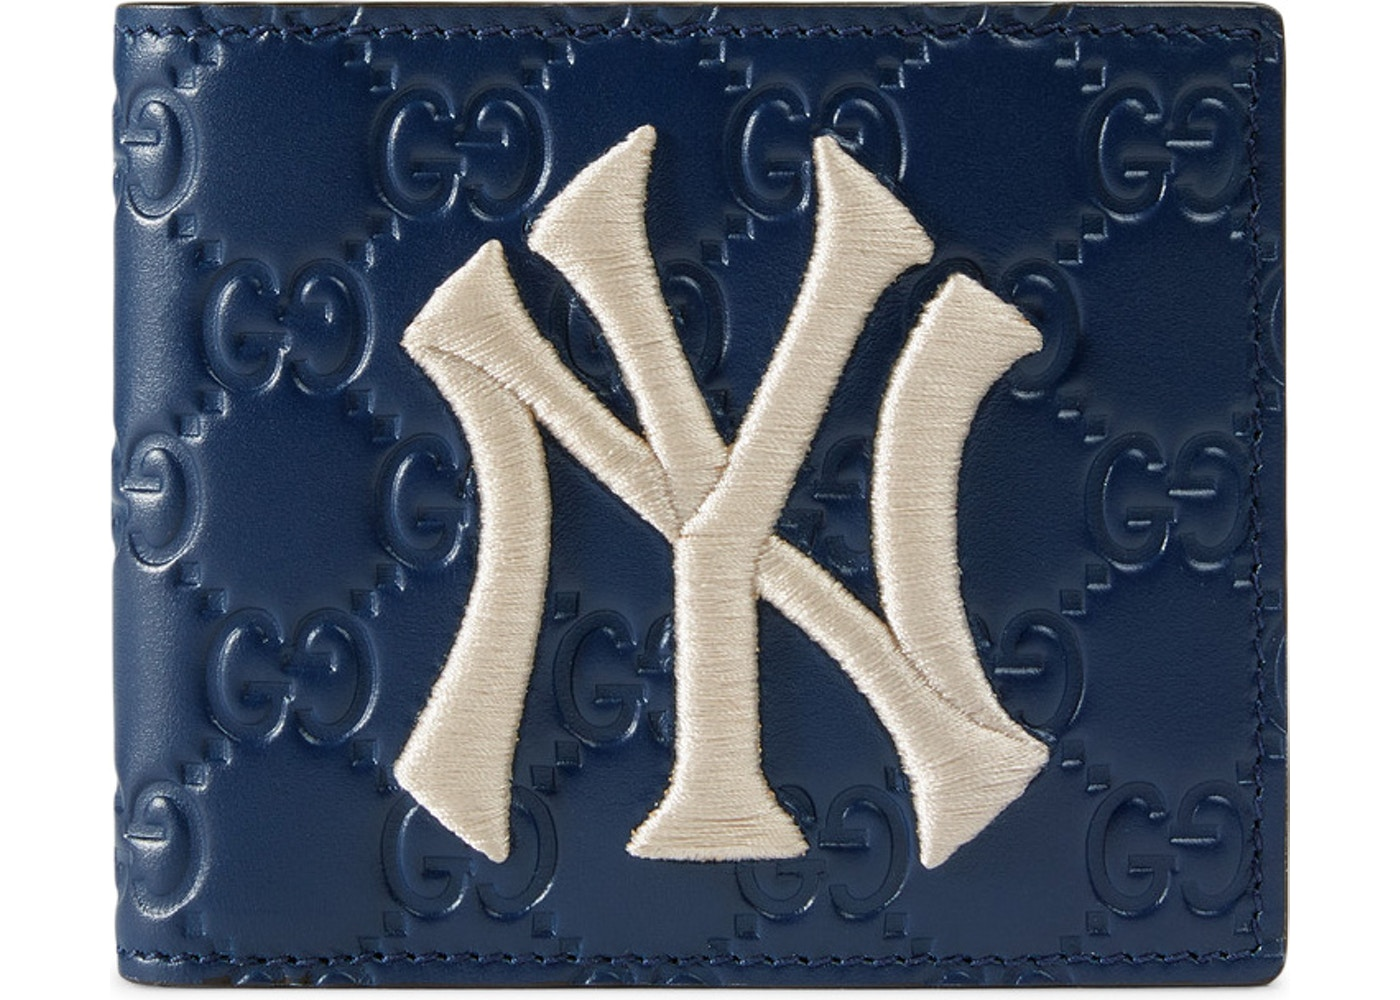 e8280d6827a8 Gucci Wallet NY Yankees Patch Royal Blue